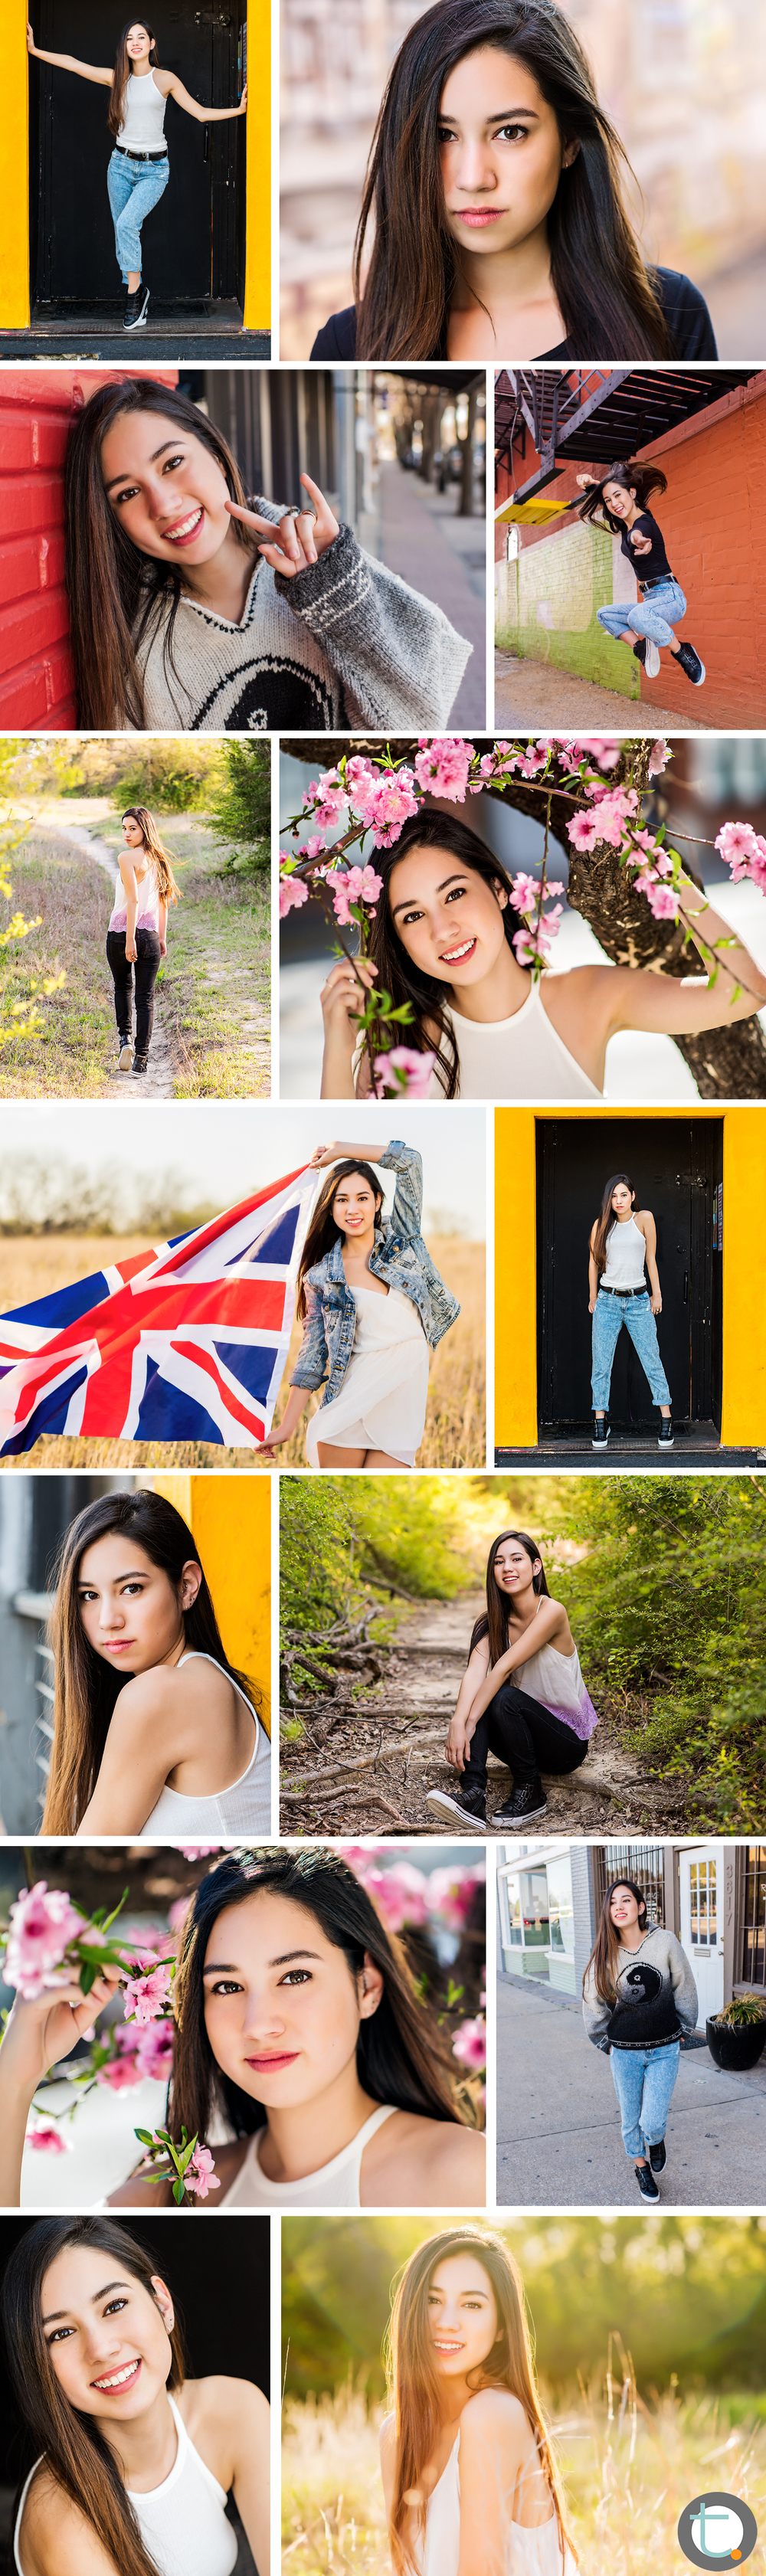 hockaday_senior_dallas_urban_field_sunset_grace_2015